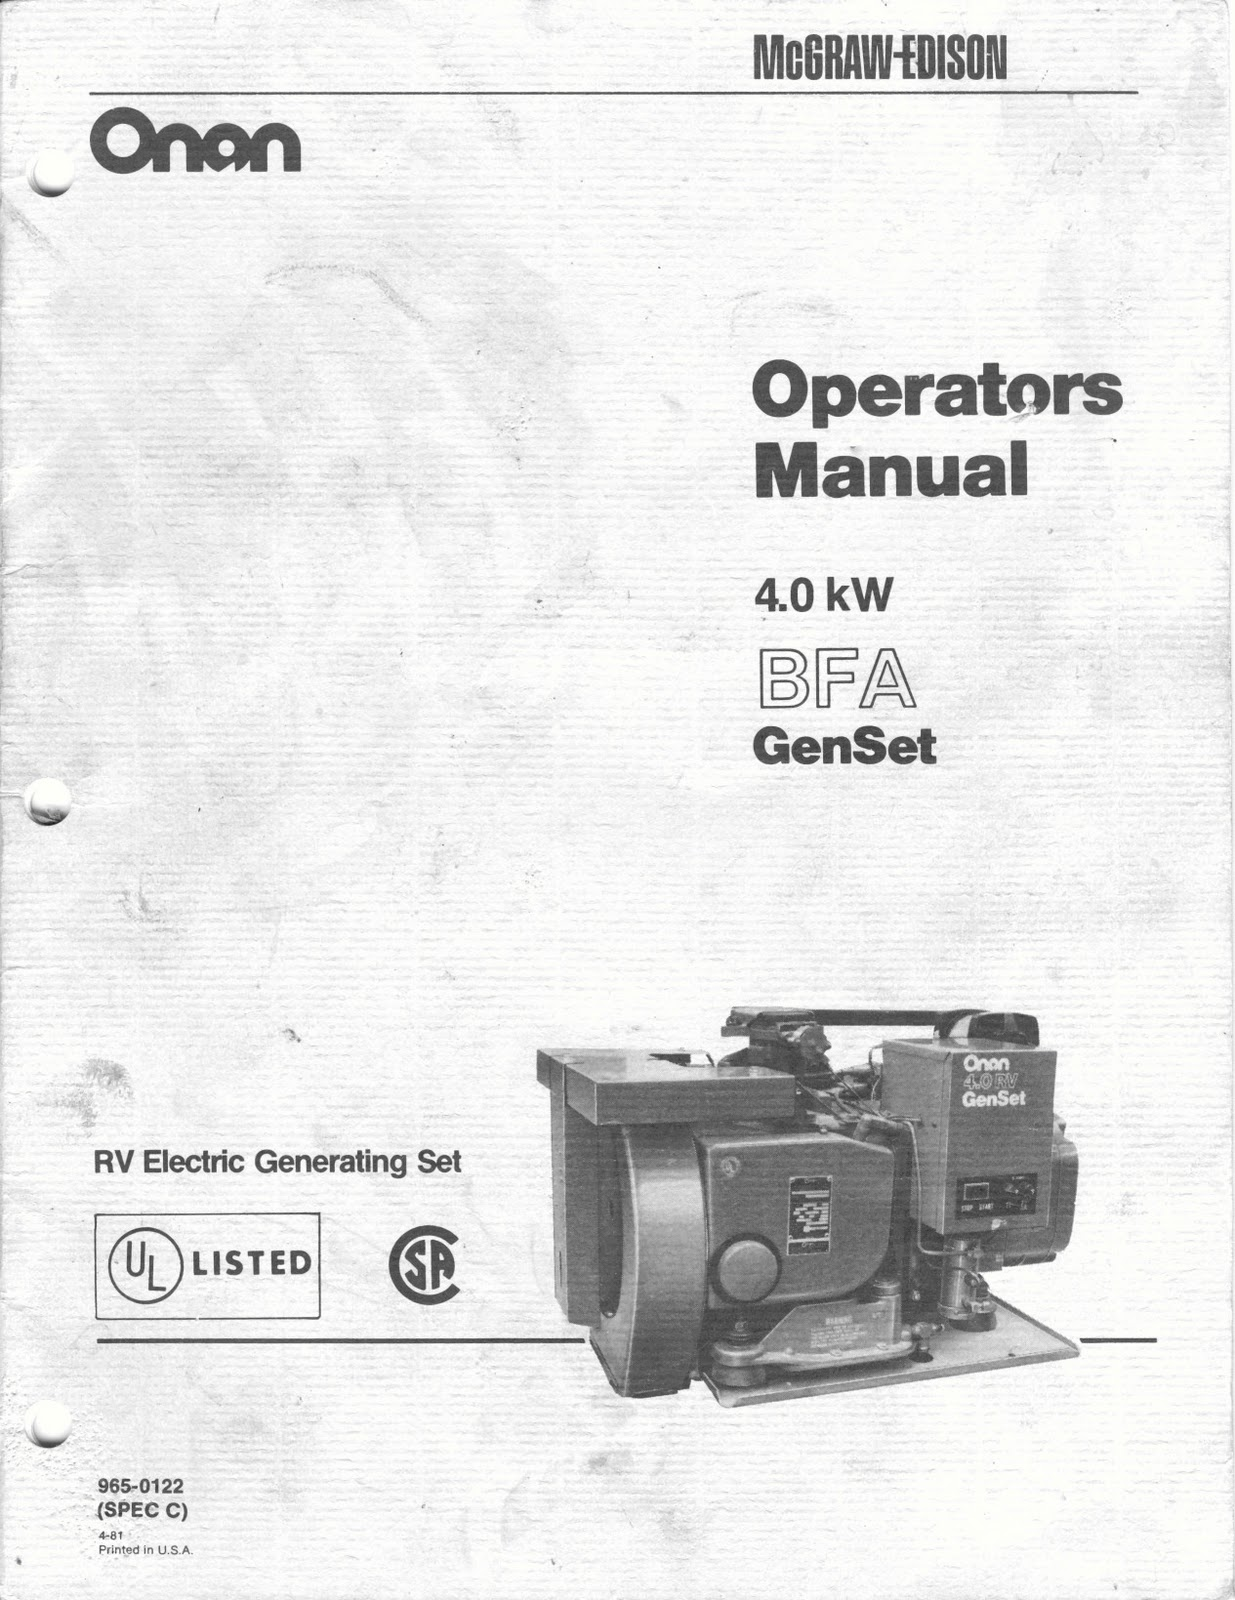 onan 4 0 kw bfa genset operators manual [ 1235 x 1600 Pixel ]